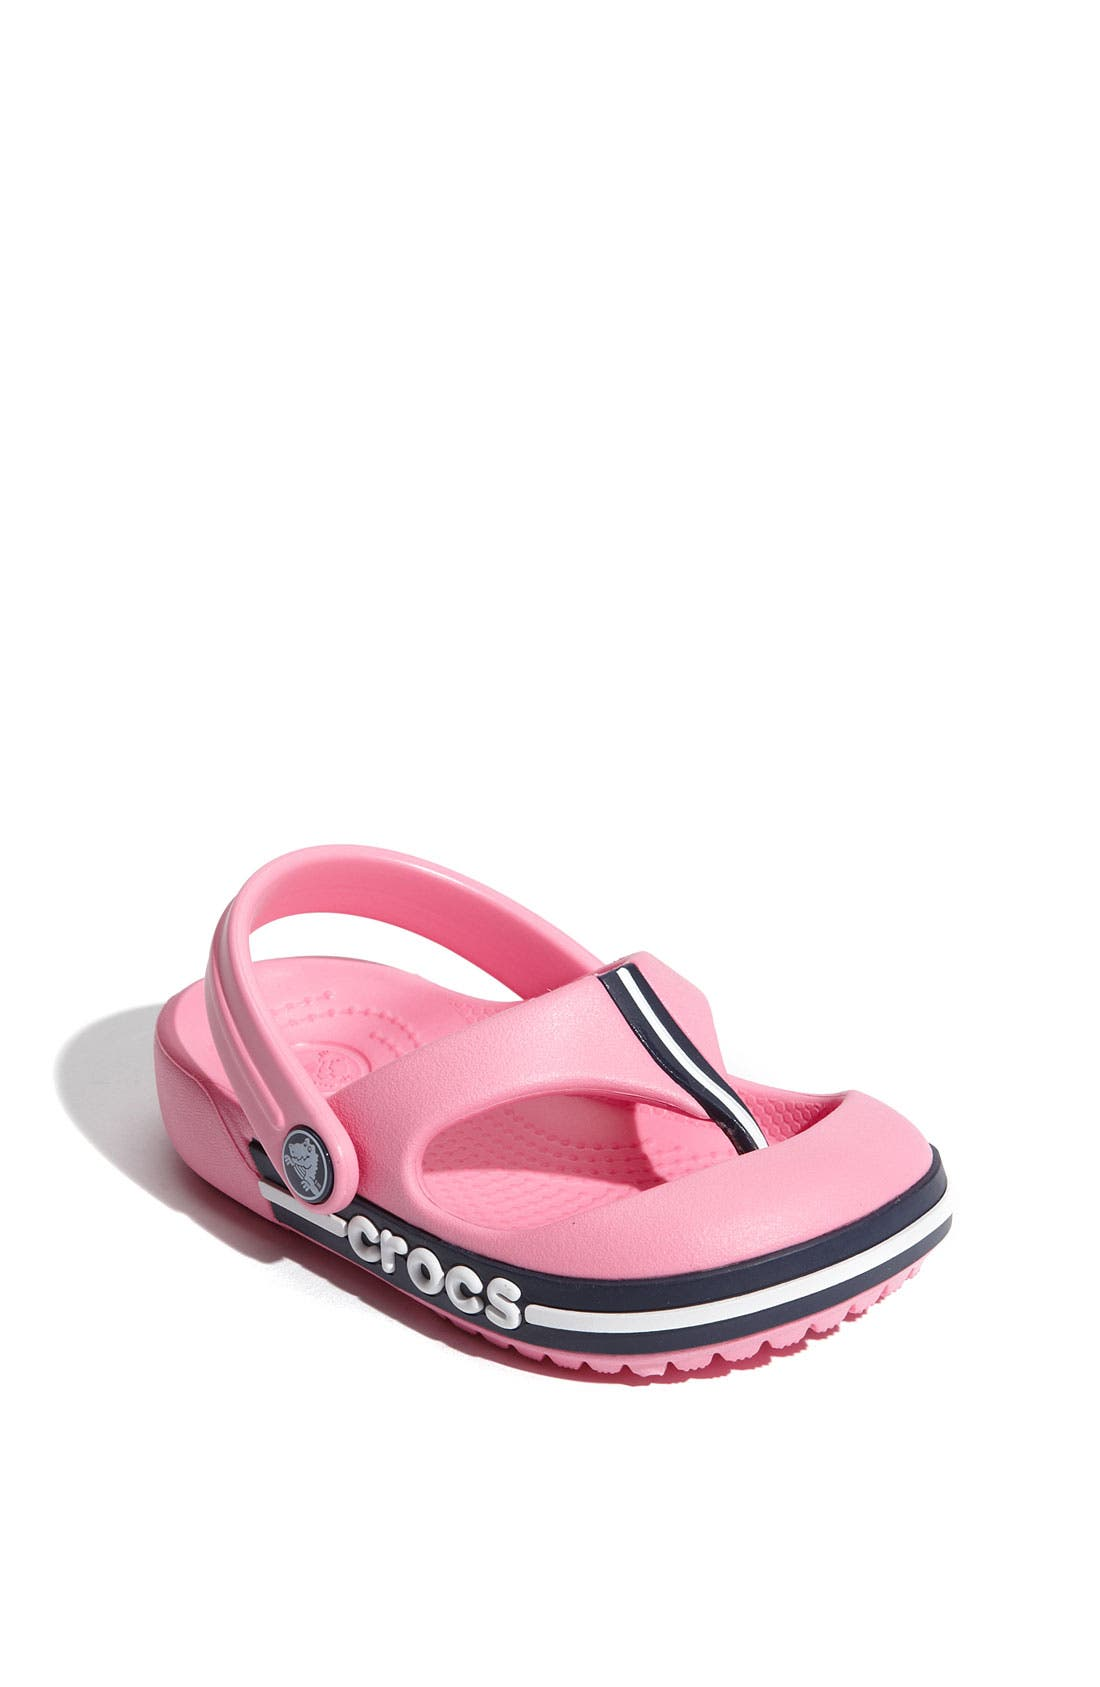 Main Image - CROCS™ 'Crocband' Flip Flop (Walker, Toddler & Little Kid)